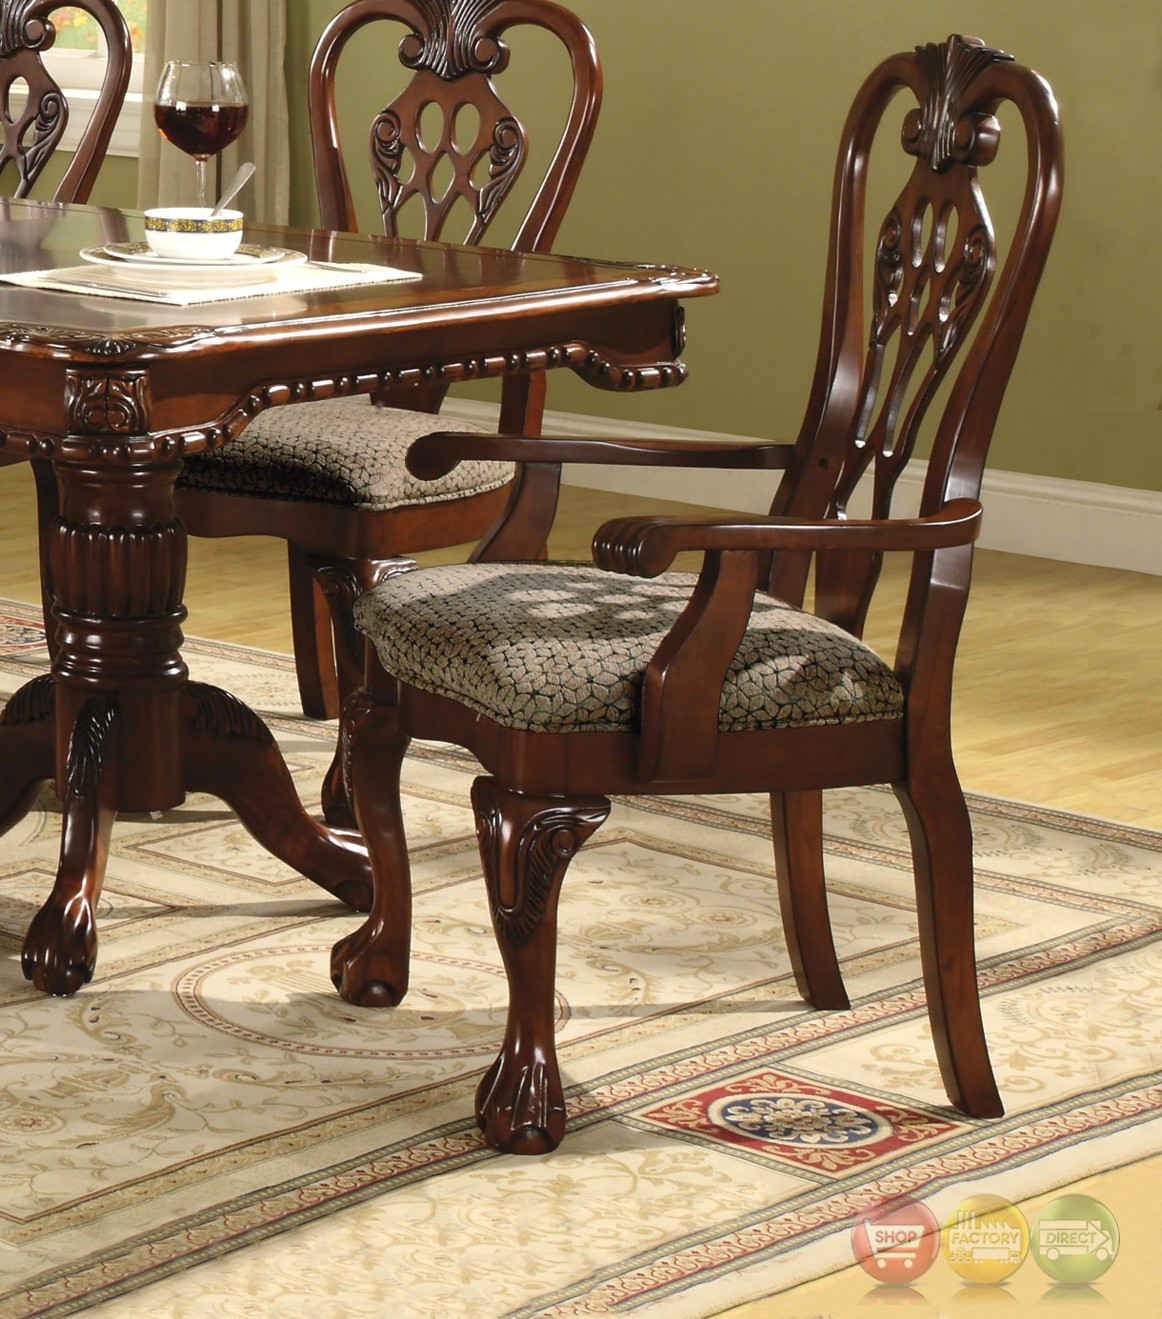 Brussels Formal Dining Room 7 Piece Furniture Set: Brussels Dining Room Set